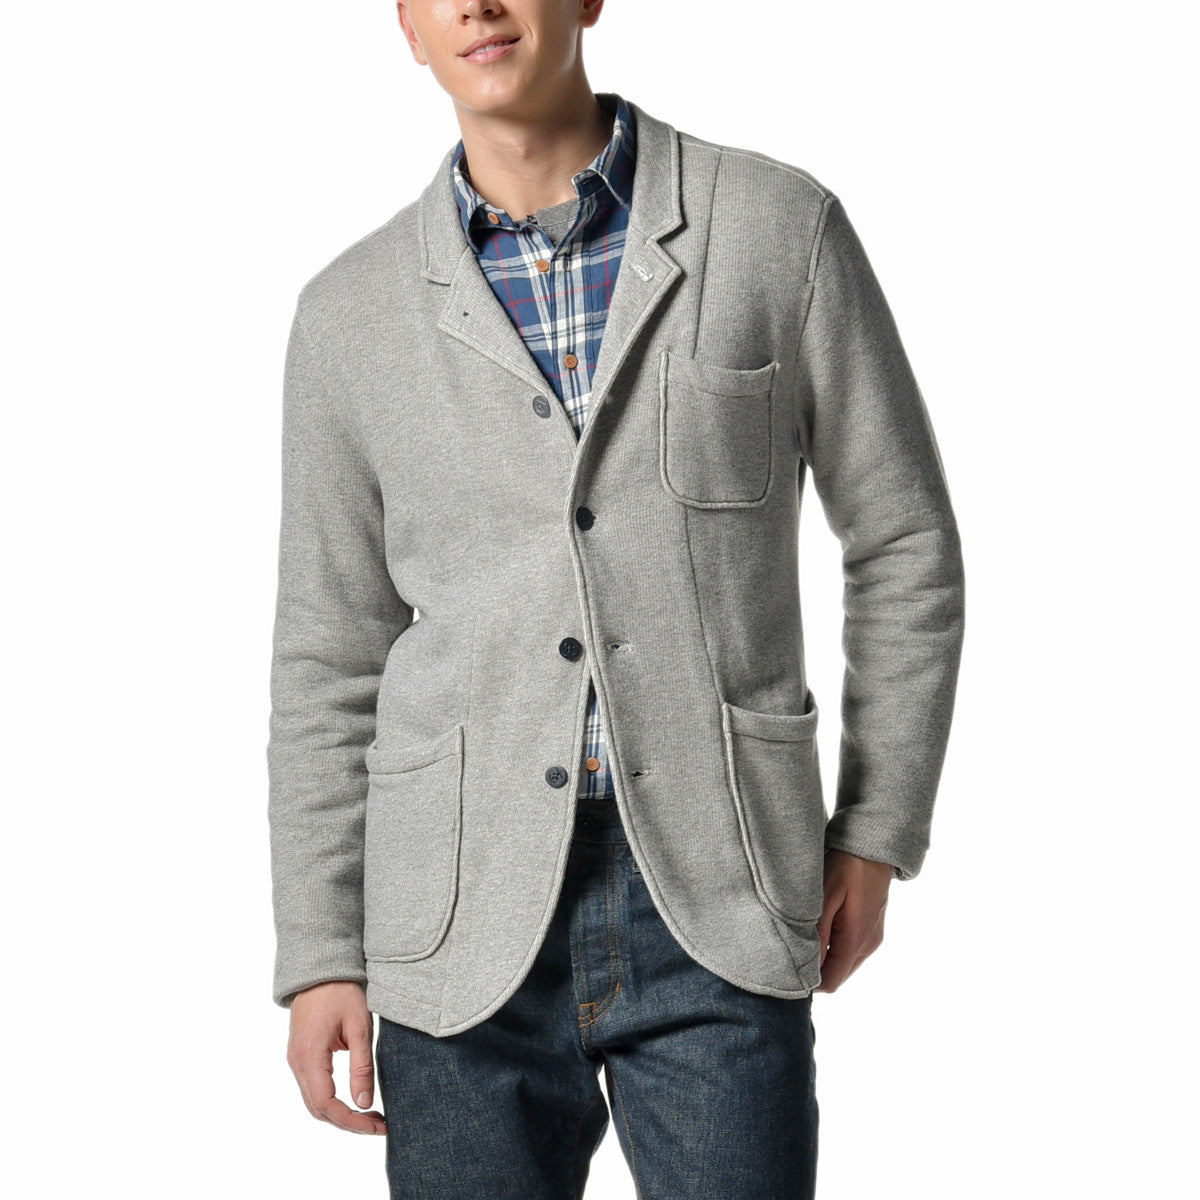 Albermarl Knit Blazer - Gray Heather